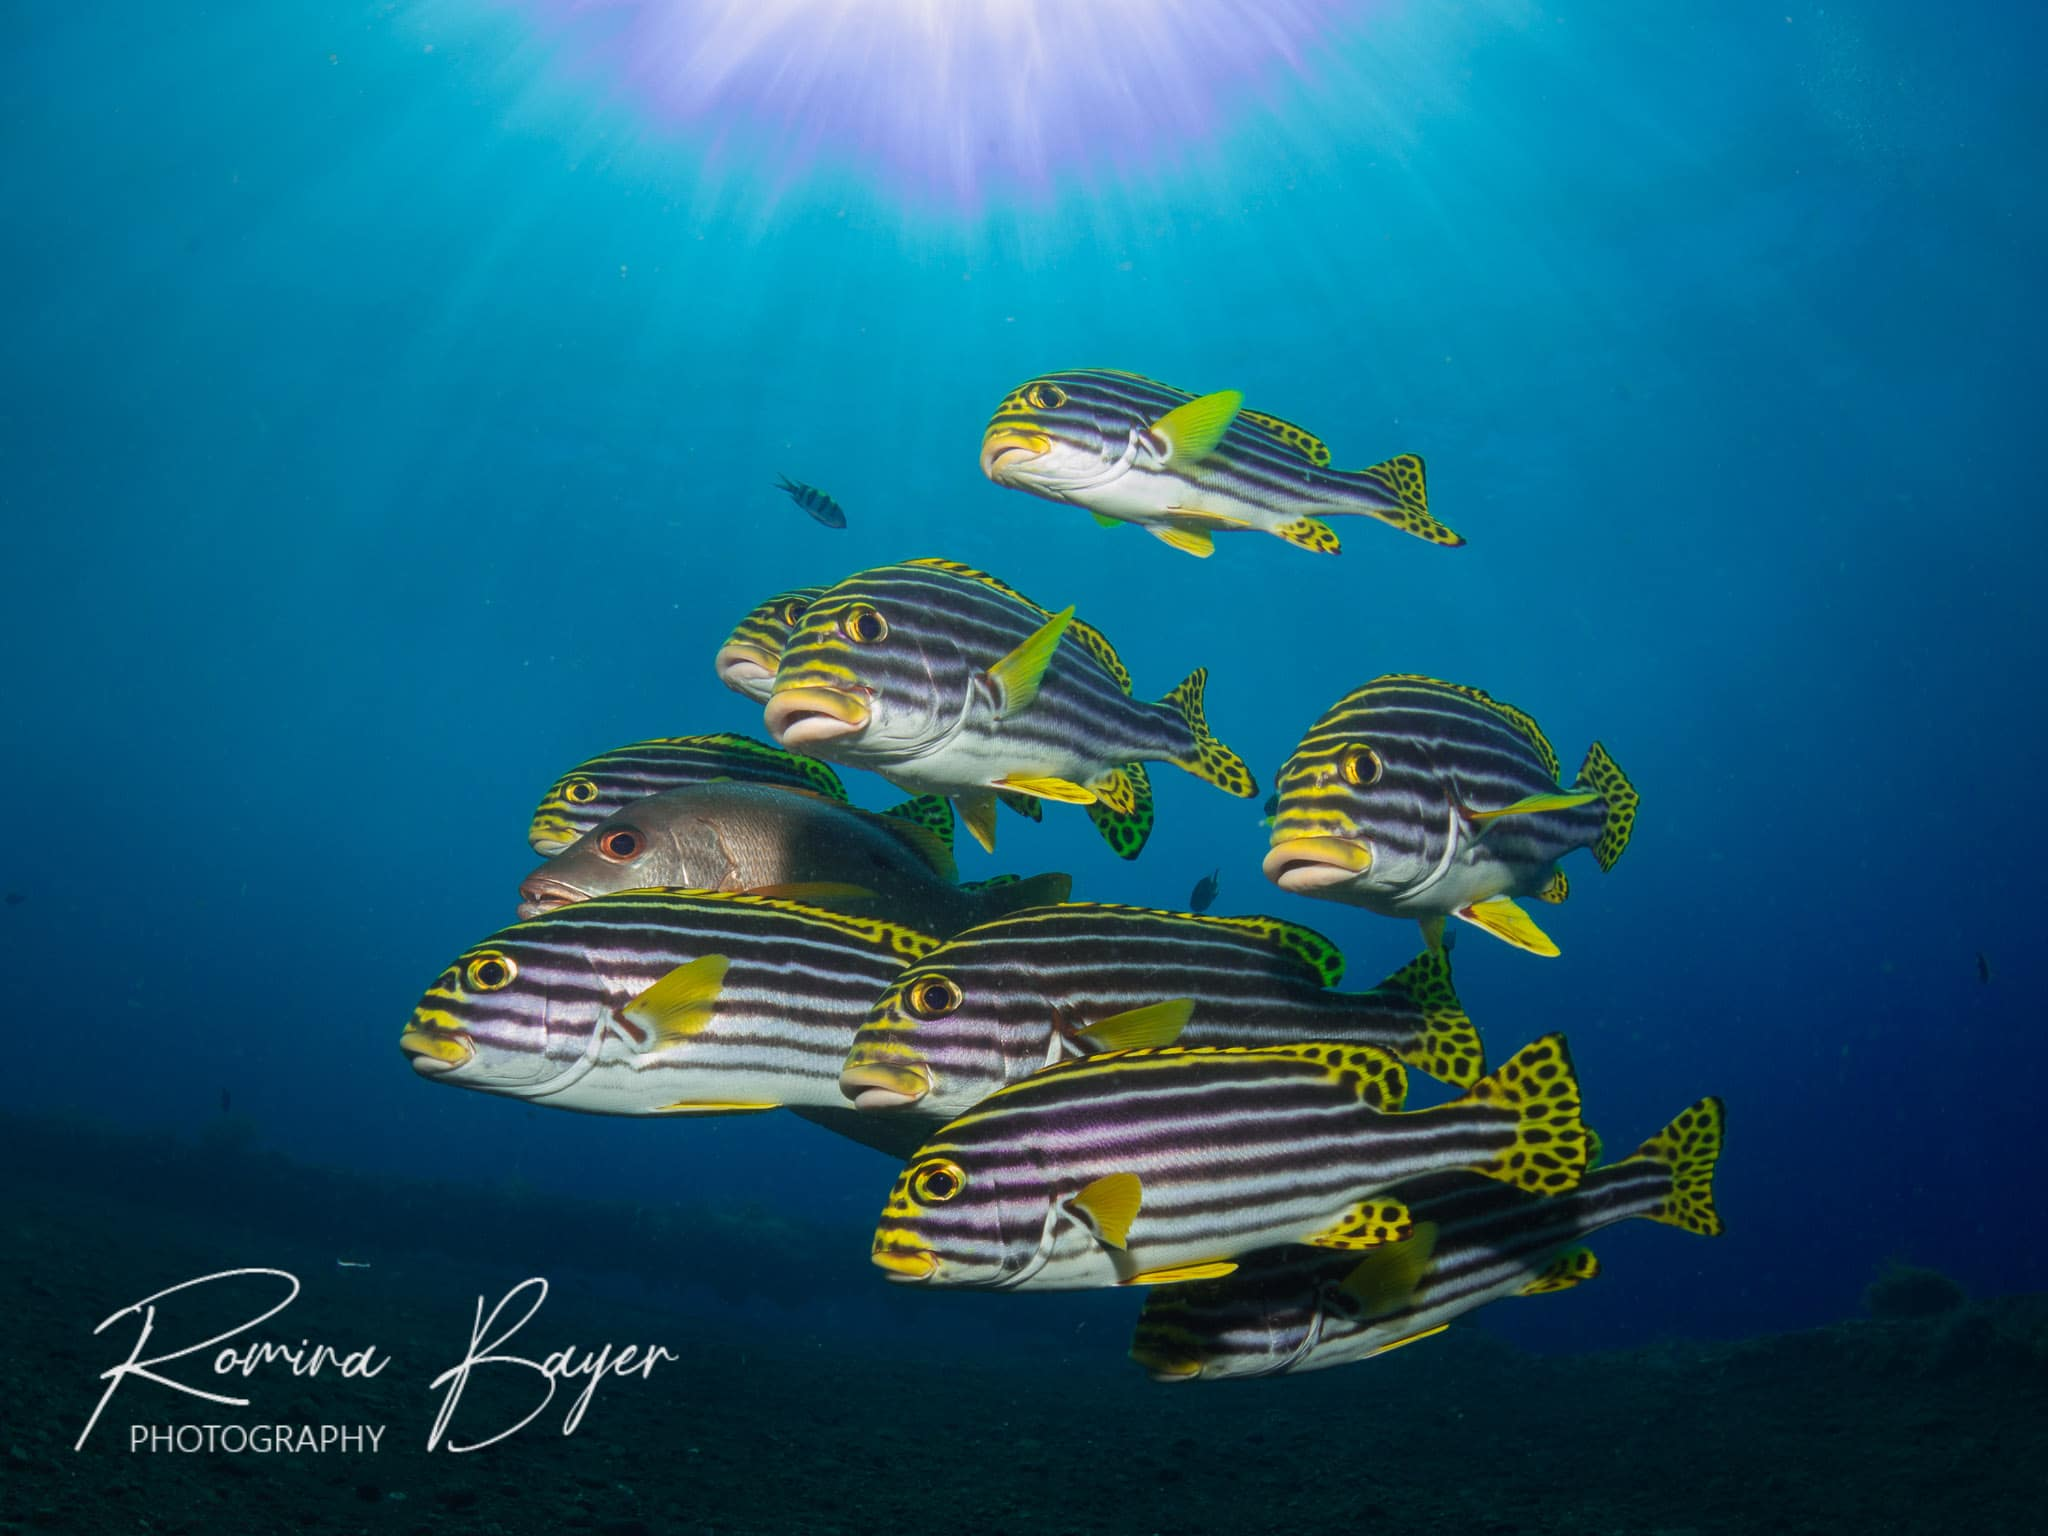 Sweetlips with sunburst in shallow water